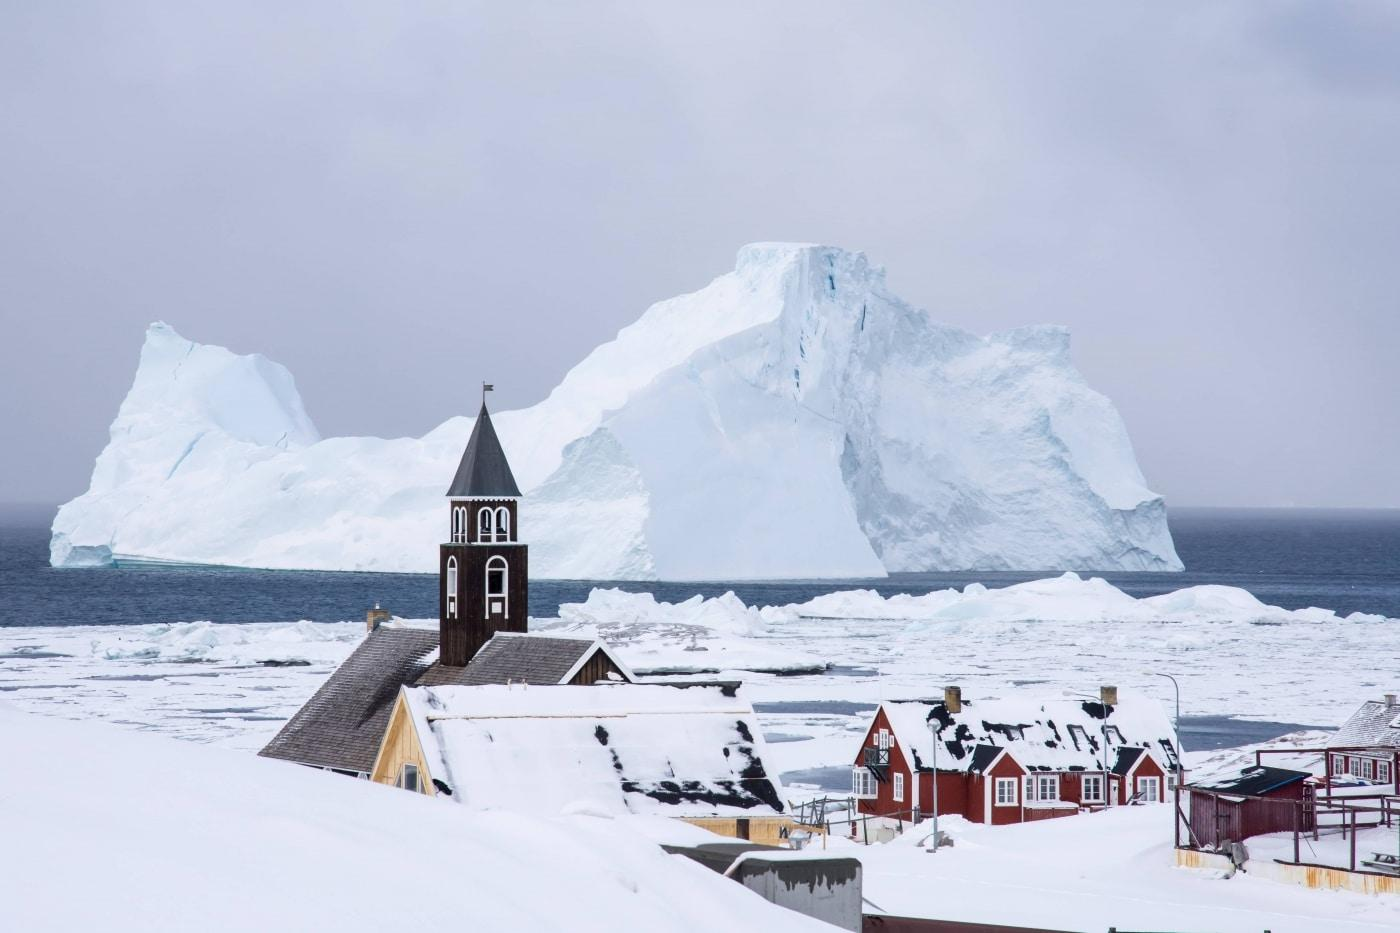 Zions church in Ilulissat. Photo by Inesa Matuliauskaite, Visit Greenland